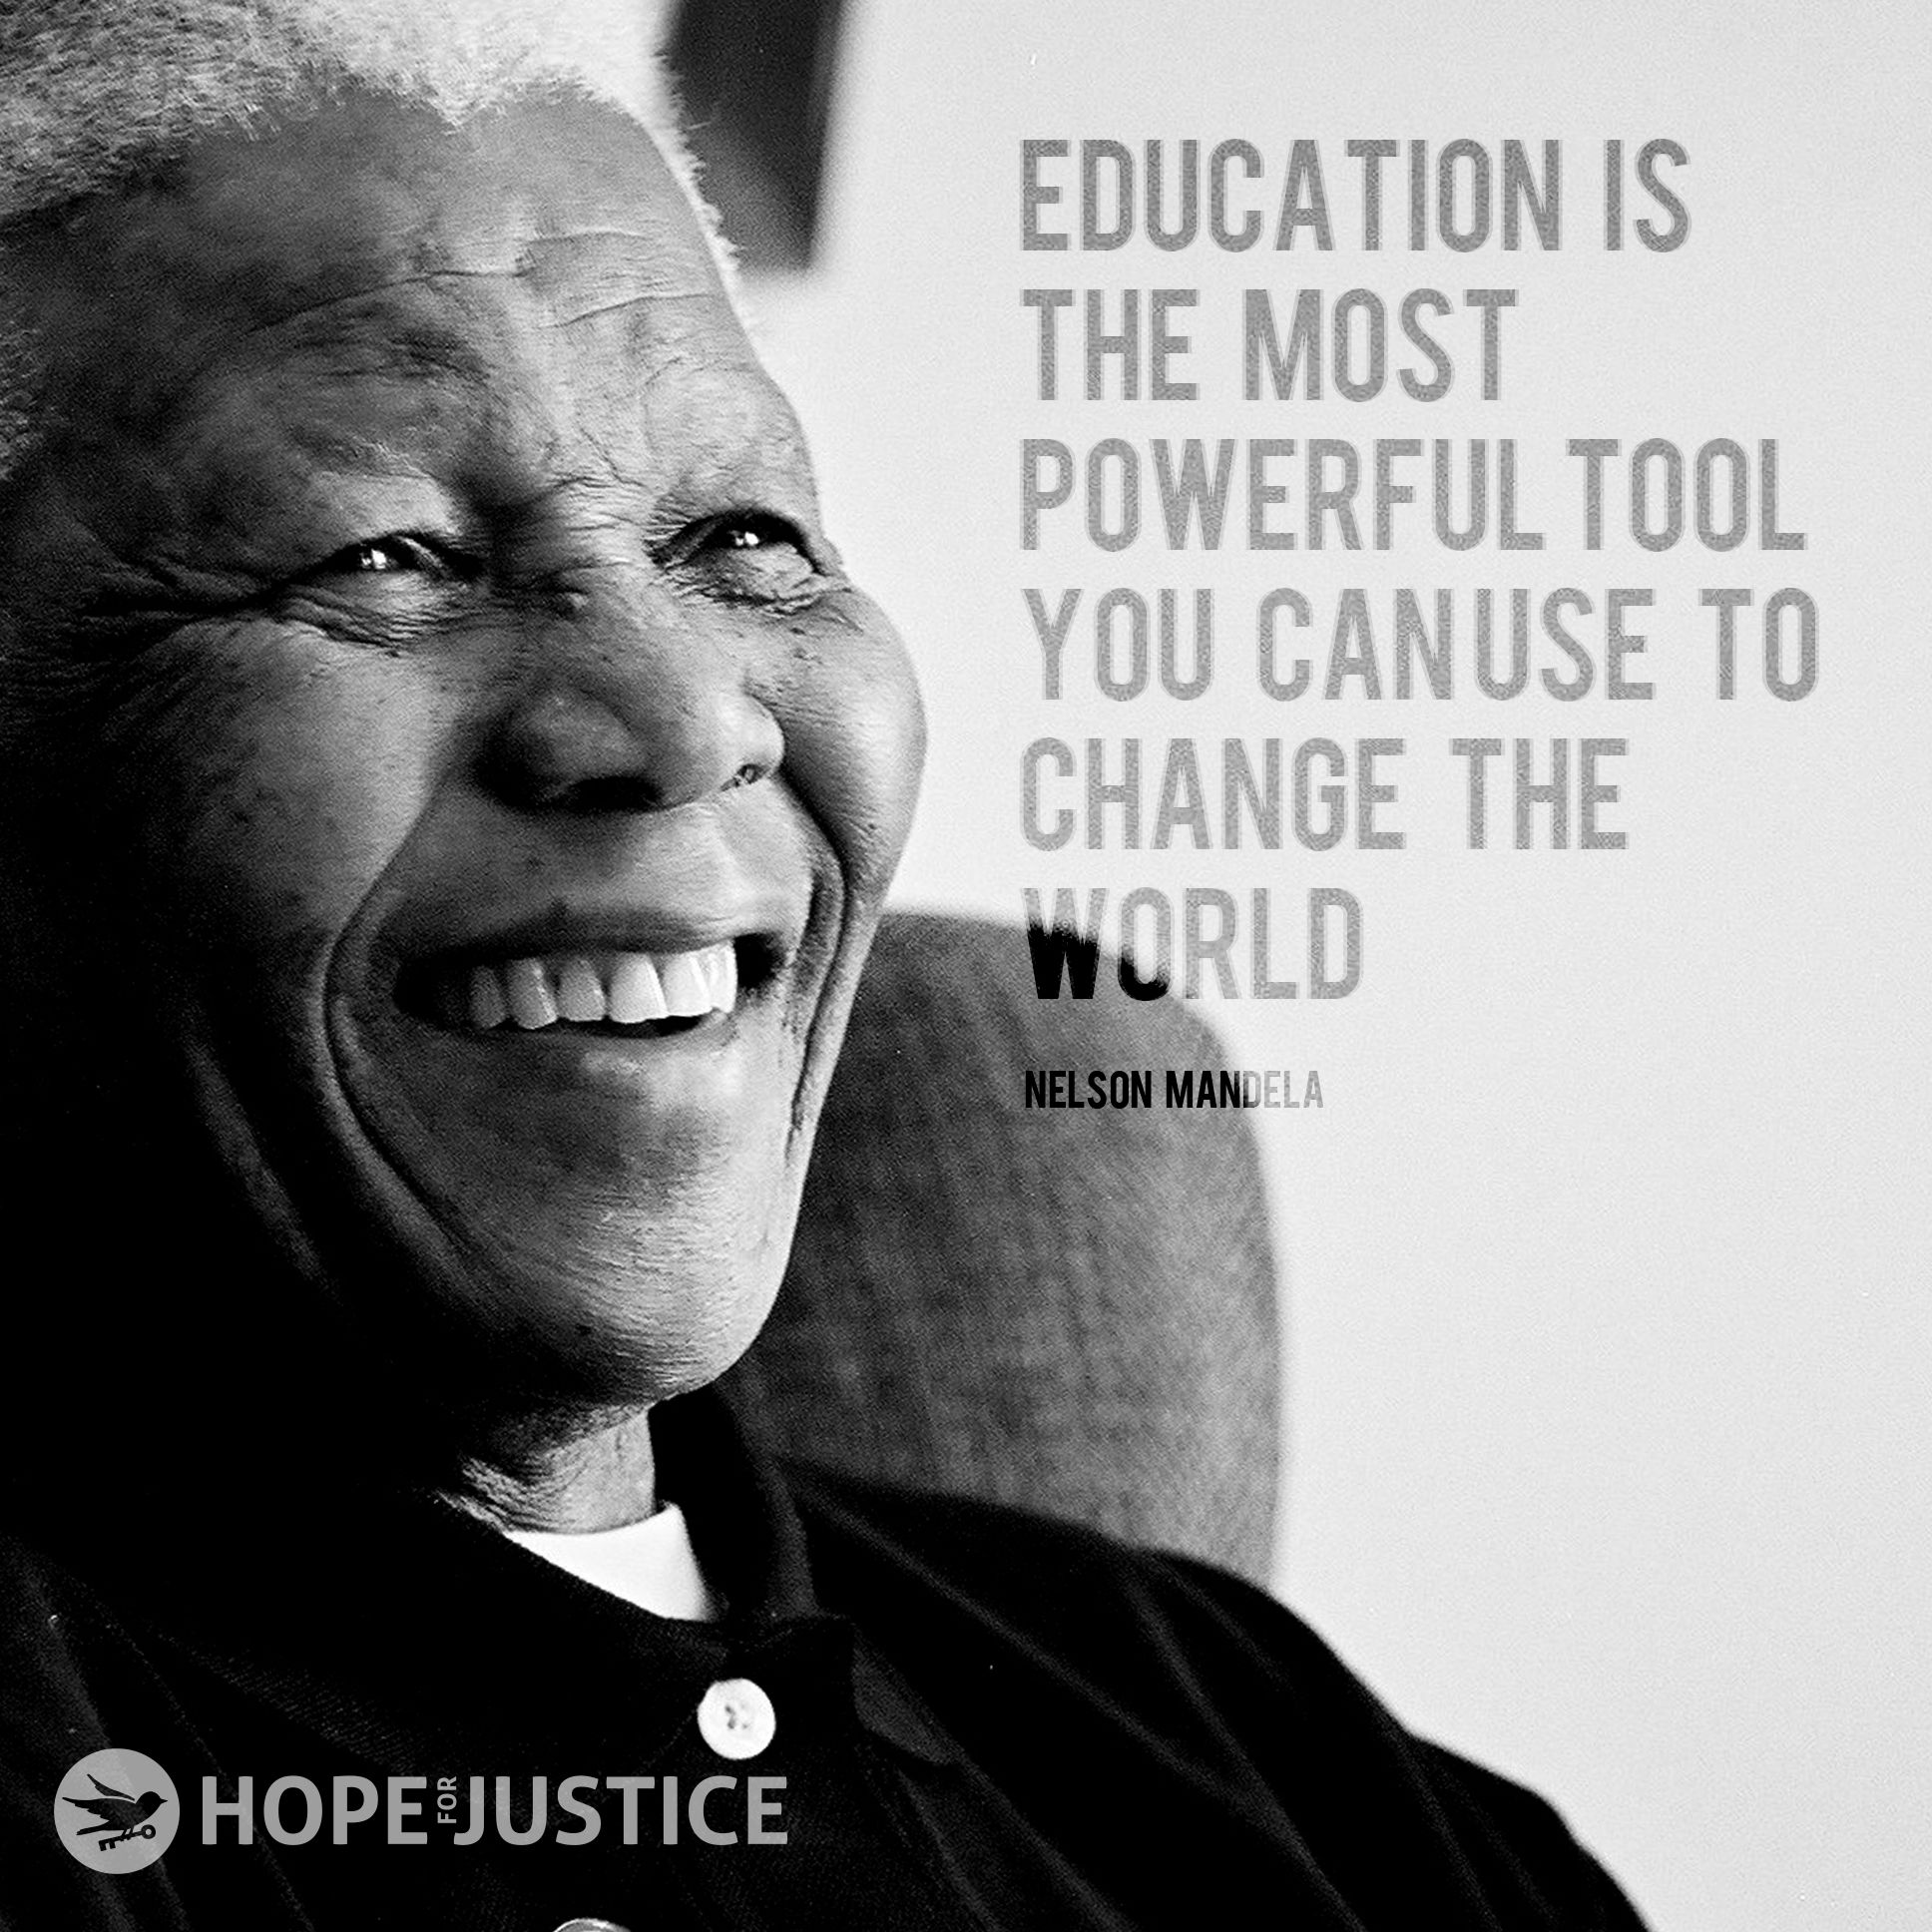 Mandela Quotes About Love Education Is The Most Powerful Tool You Can Use To Change The